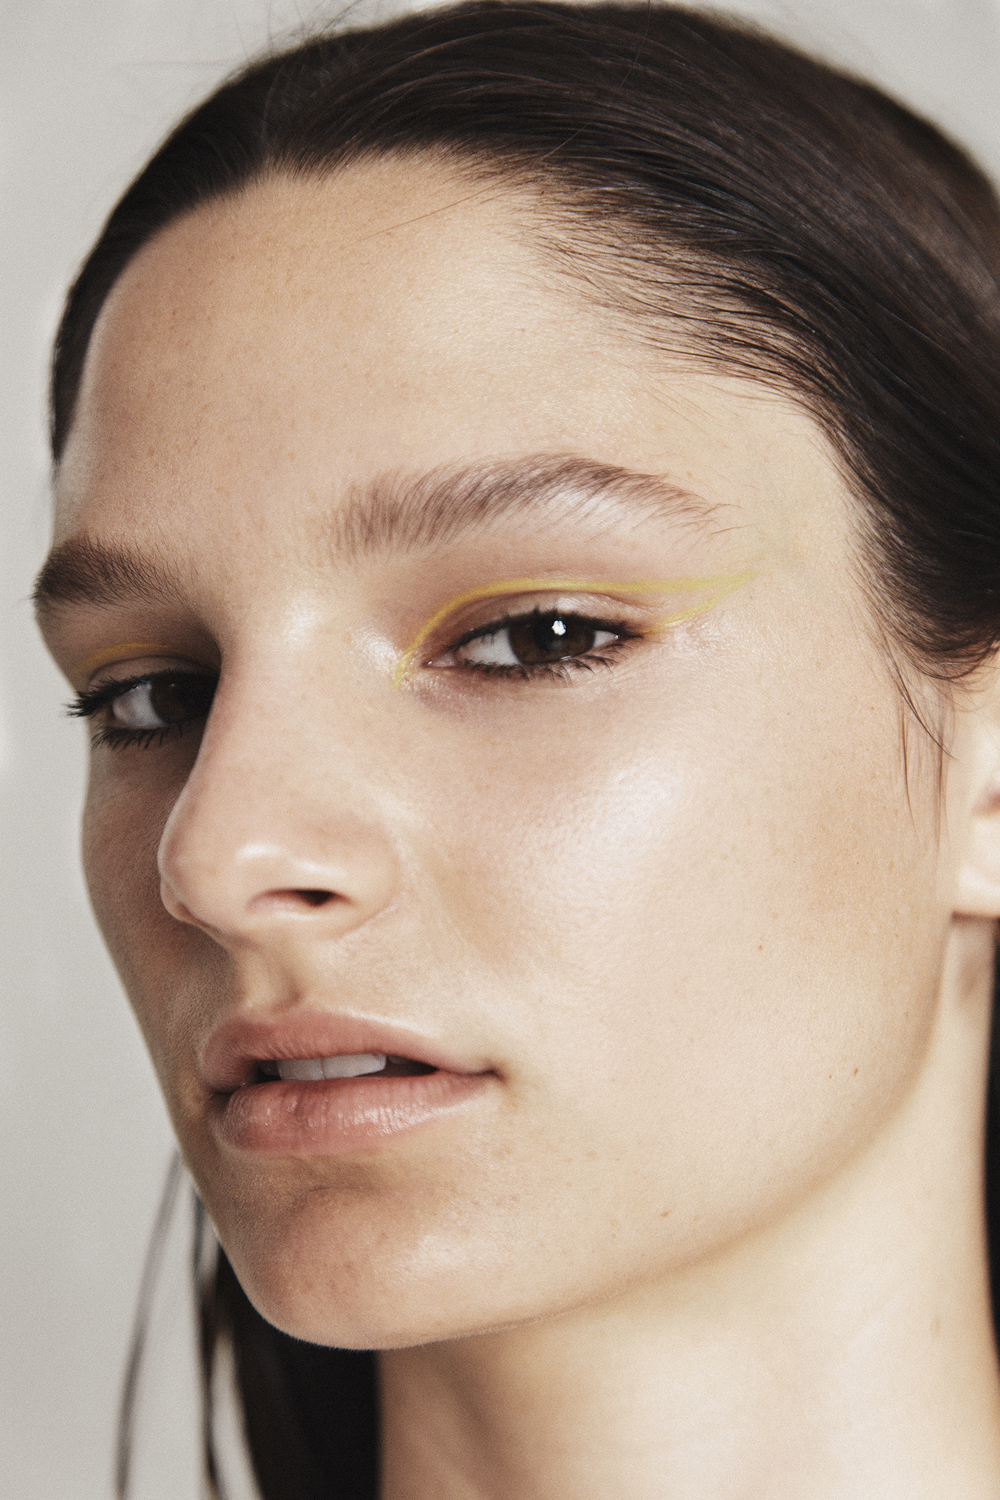 Emily Rink Photographed by Adam Bryce and Styled By Chloe Hill for Oyster Mag Feat Mac cosmetics yellow eye pencil